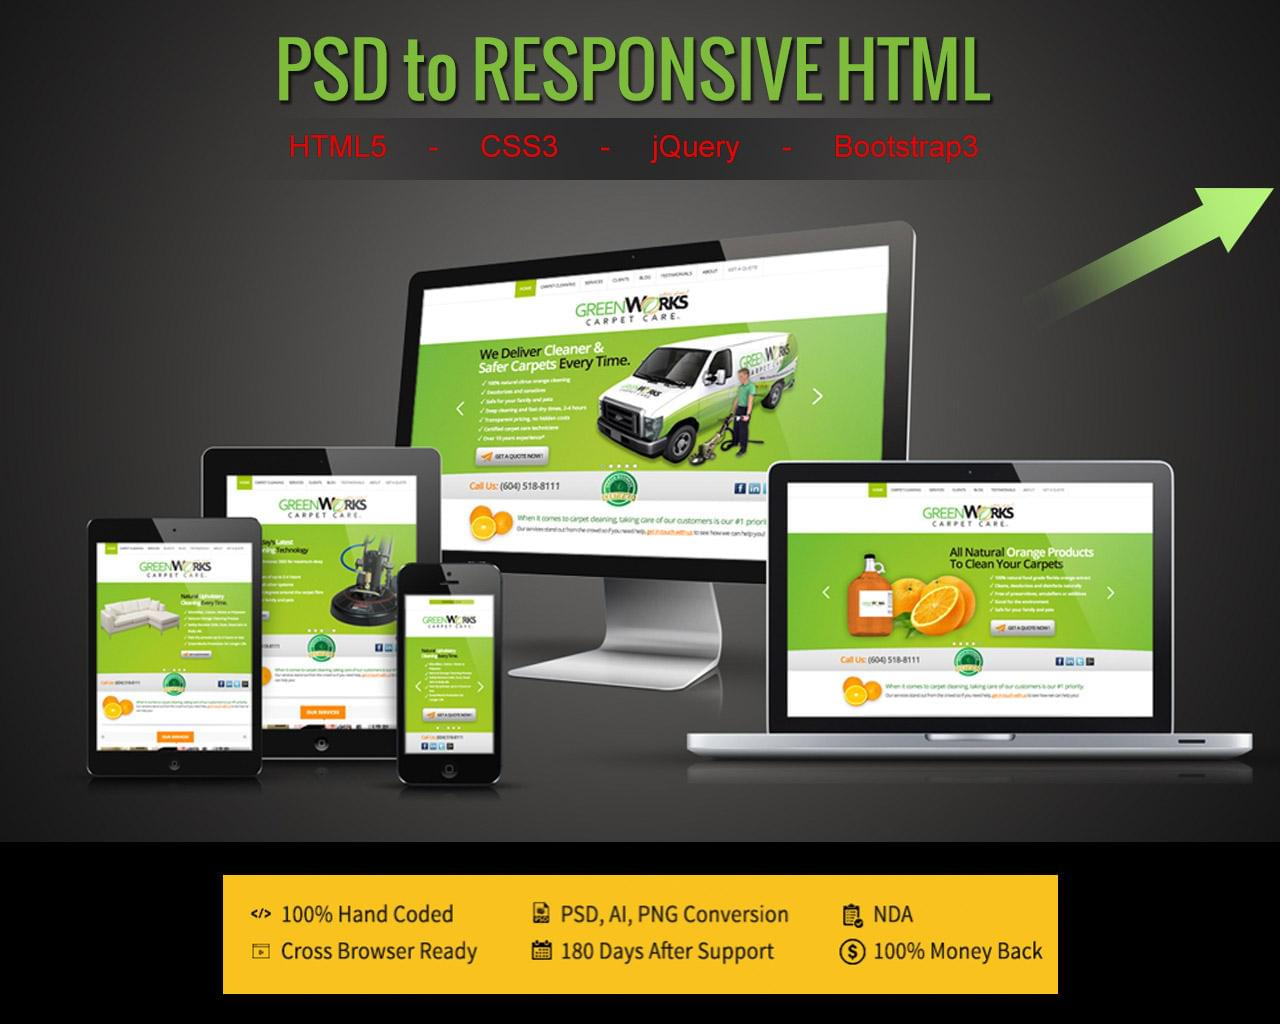 PSD to Responsive HTML5/CSS3 with Bootstrap & jQuery by designsvalley - 111357